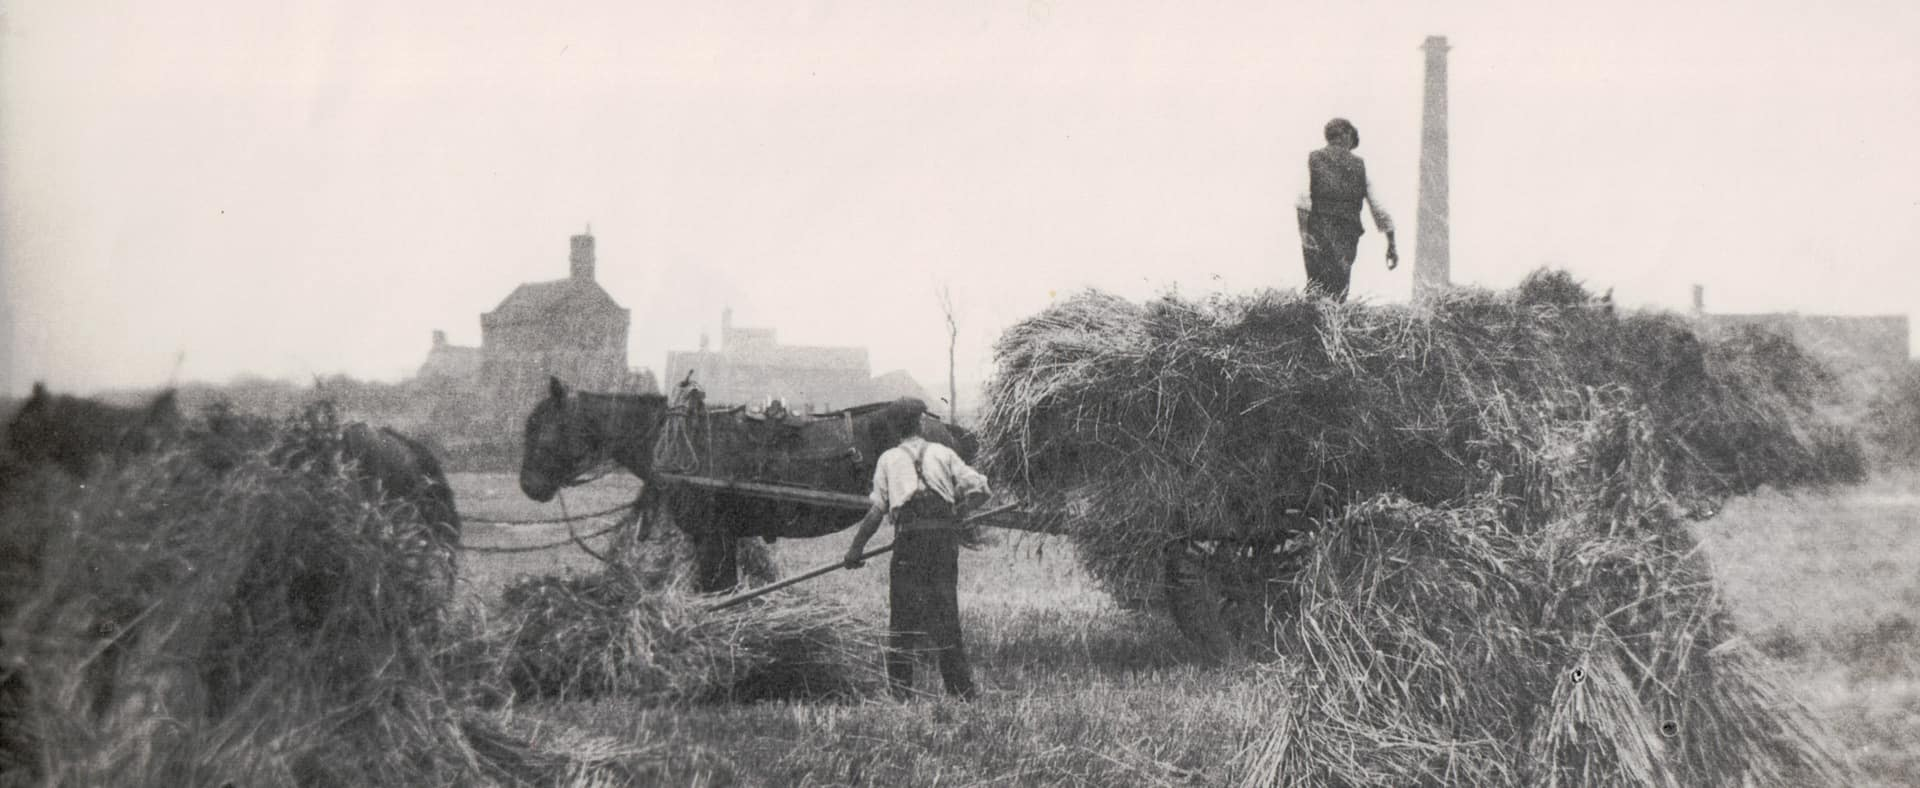 Wheat harvesting, Lion Farm. Date uknown, possibly 1930s